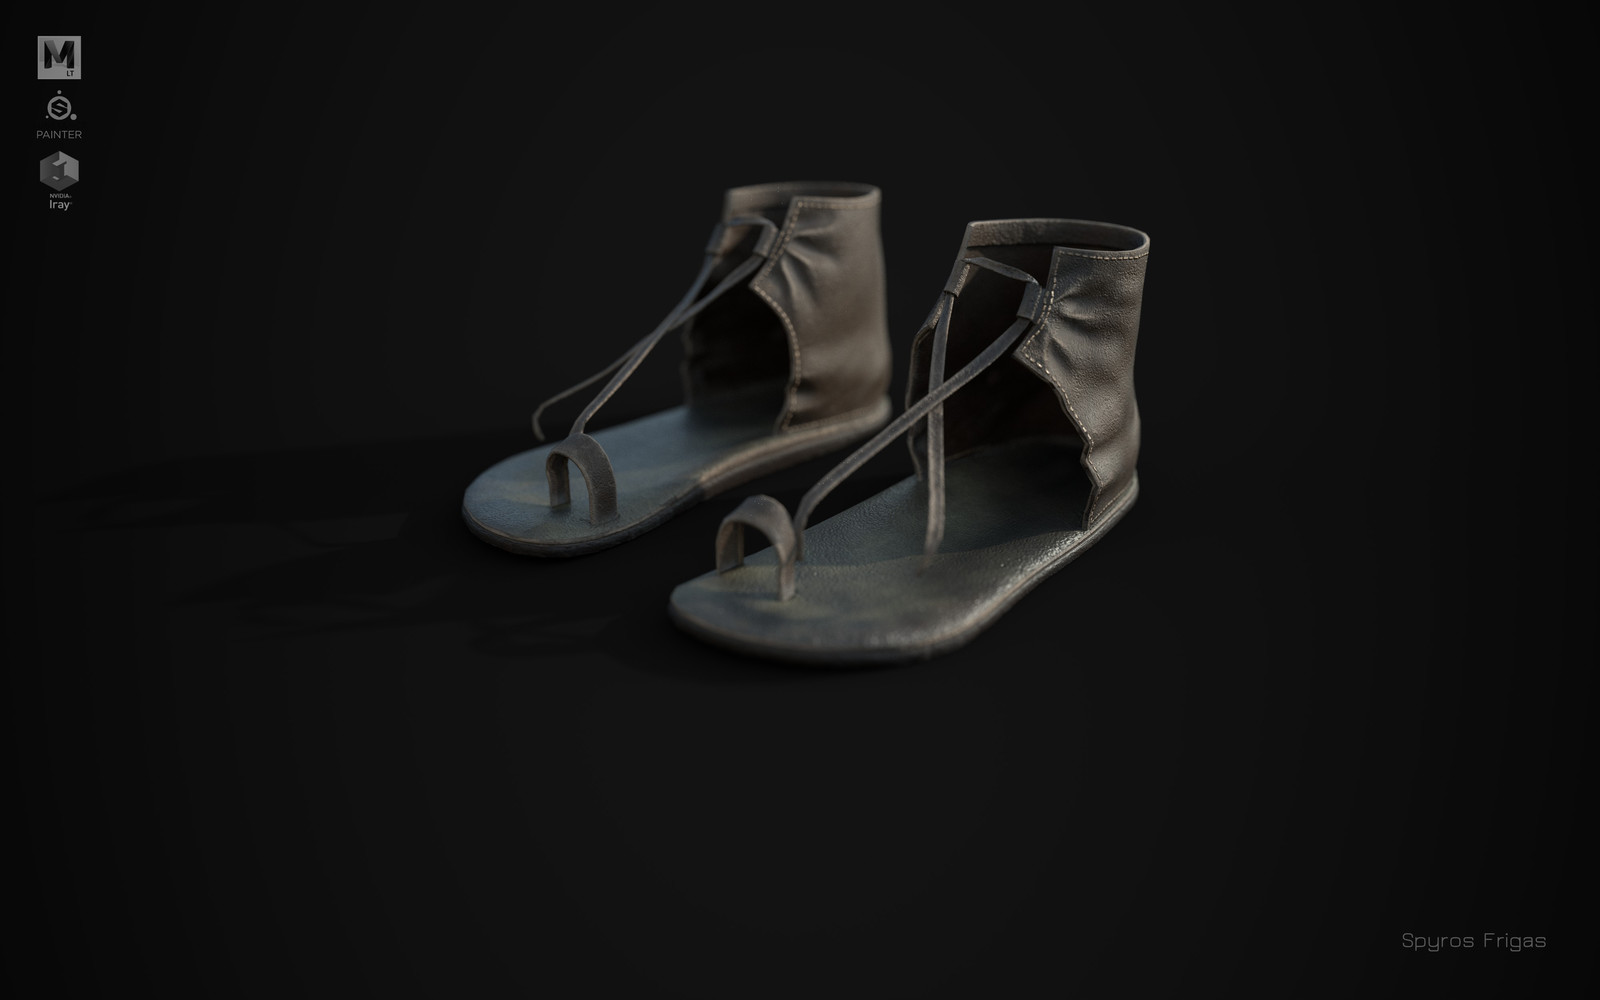 Used leather sandals (Mayan era)